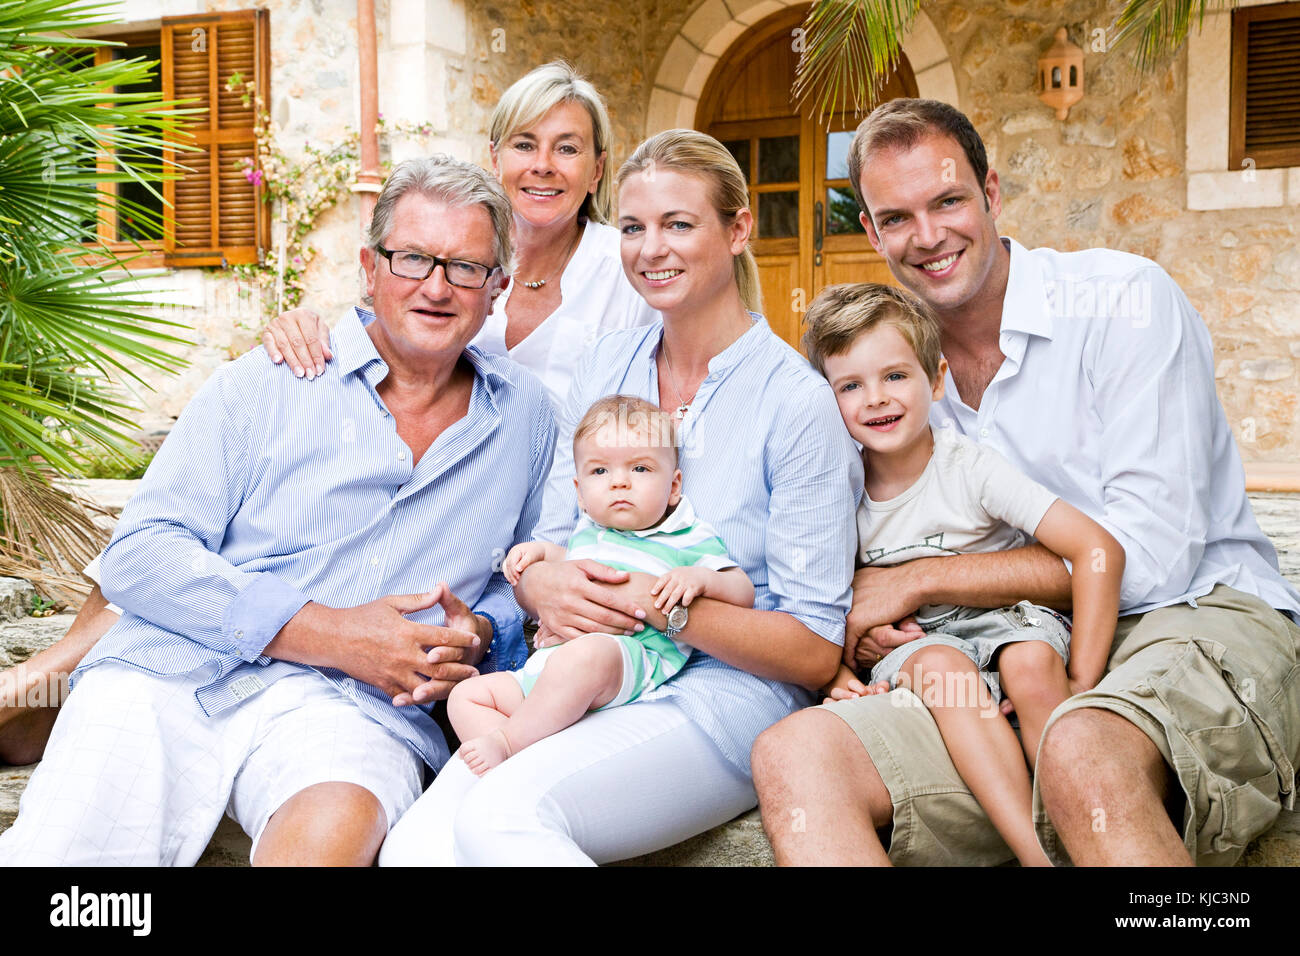 Portrait of Family in Front of Home - Stock Image